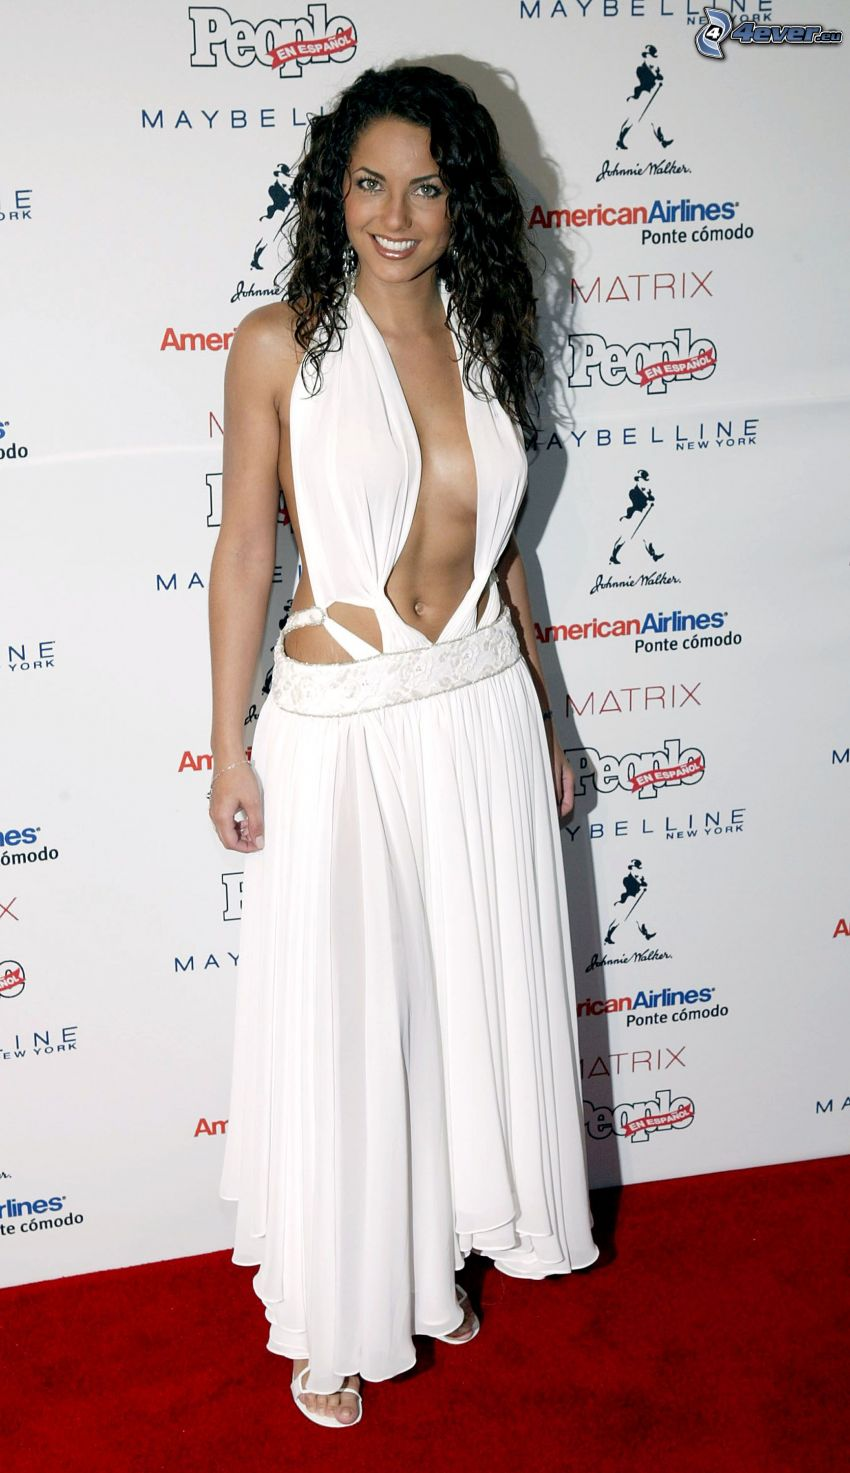 Barbara Mori, white dress, braless